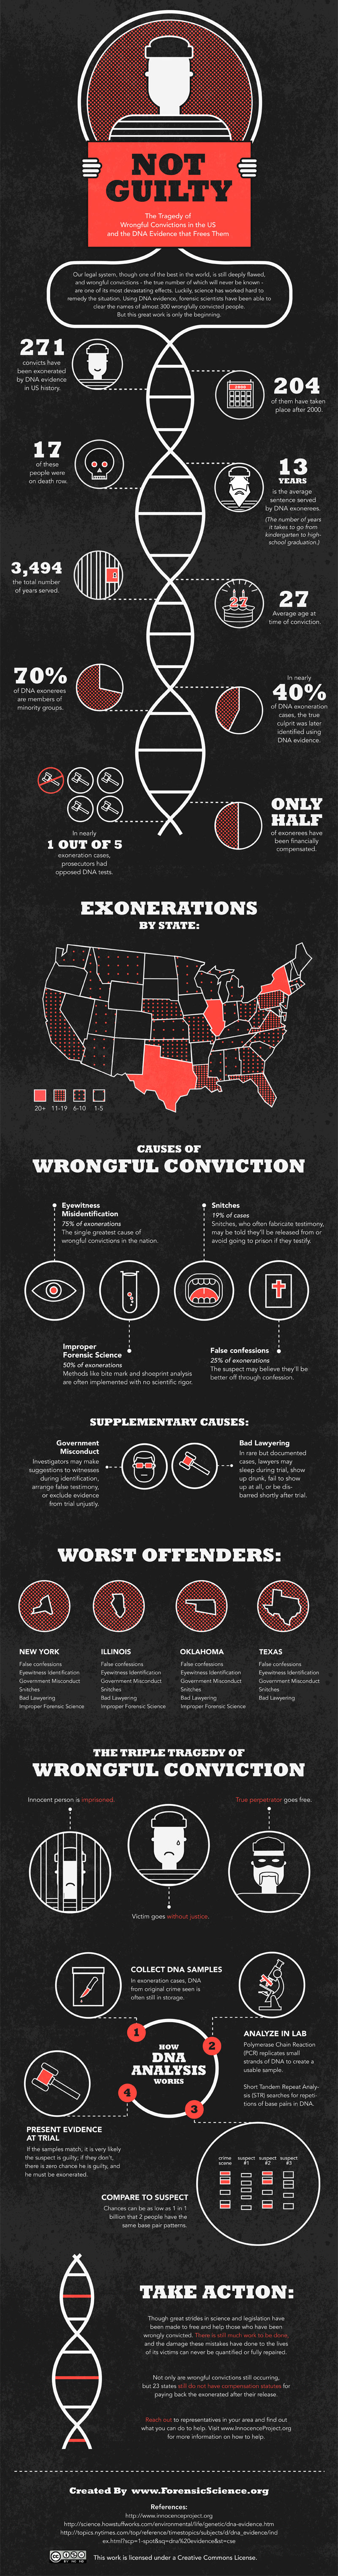 wrongful convictions dna evidence